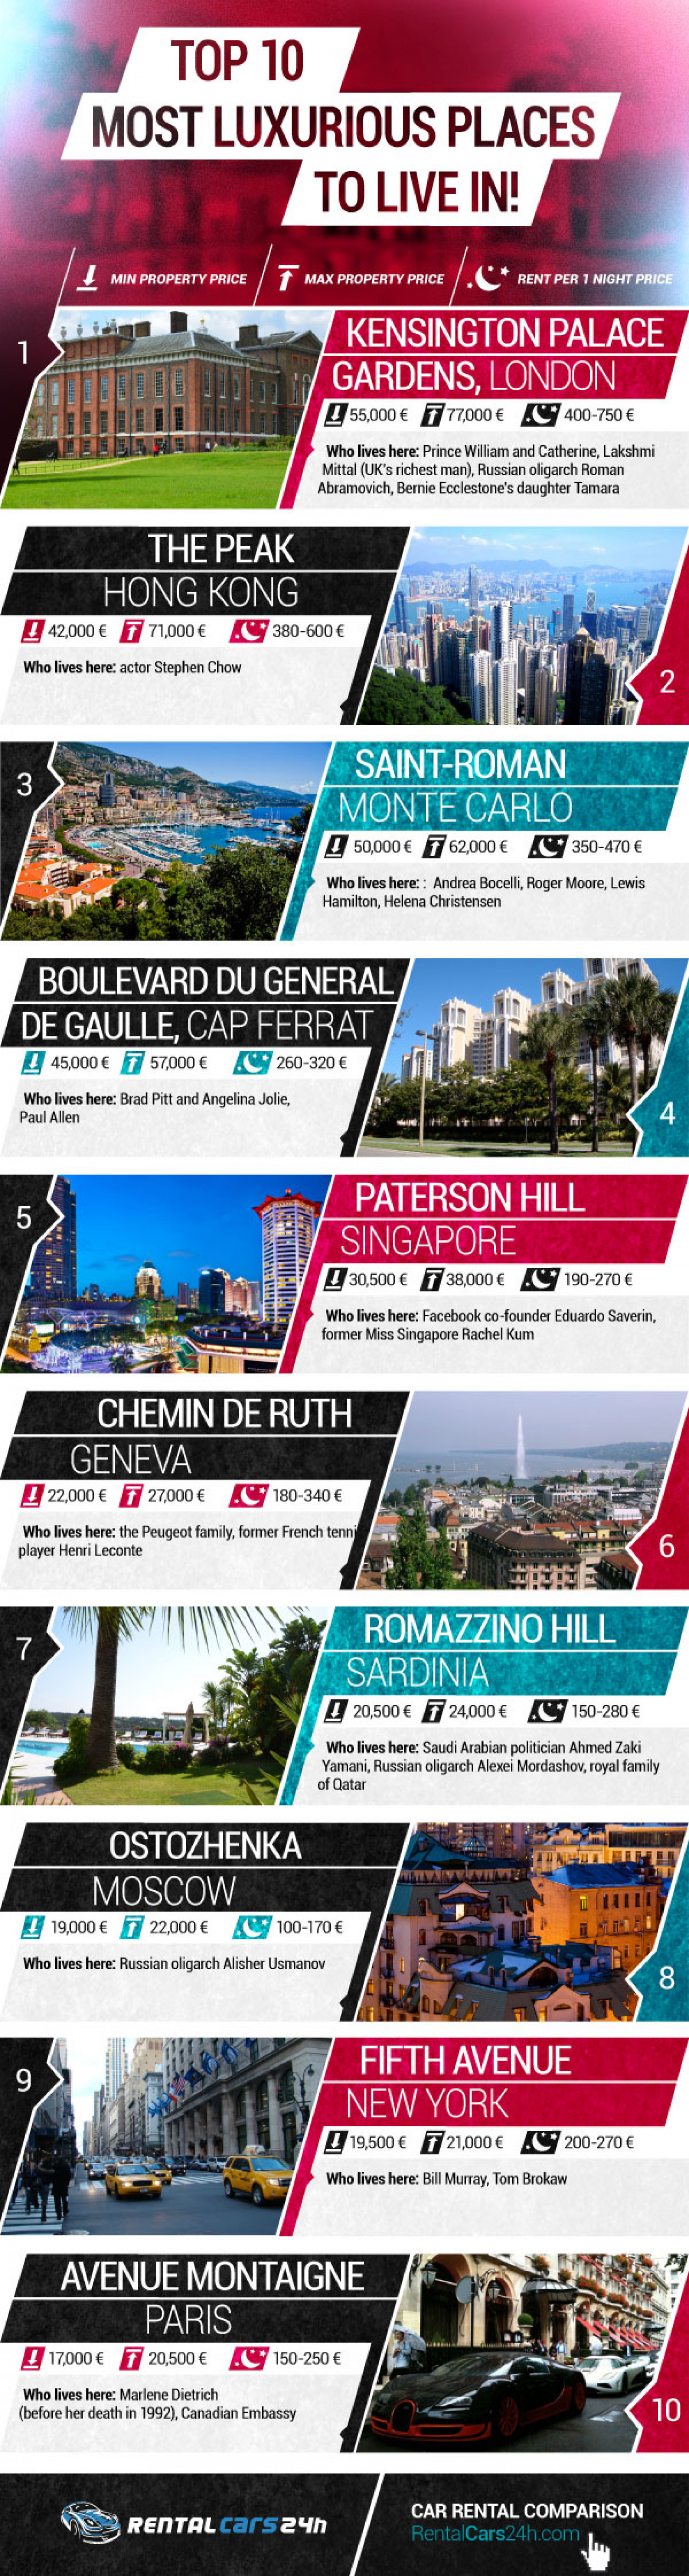 TOP 10 Most Luxurious Places To Live In! Infographic